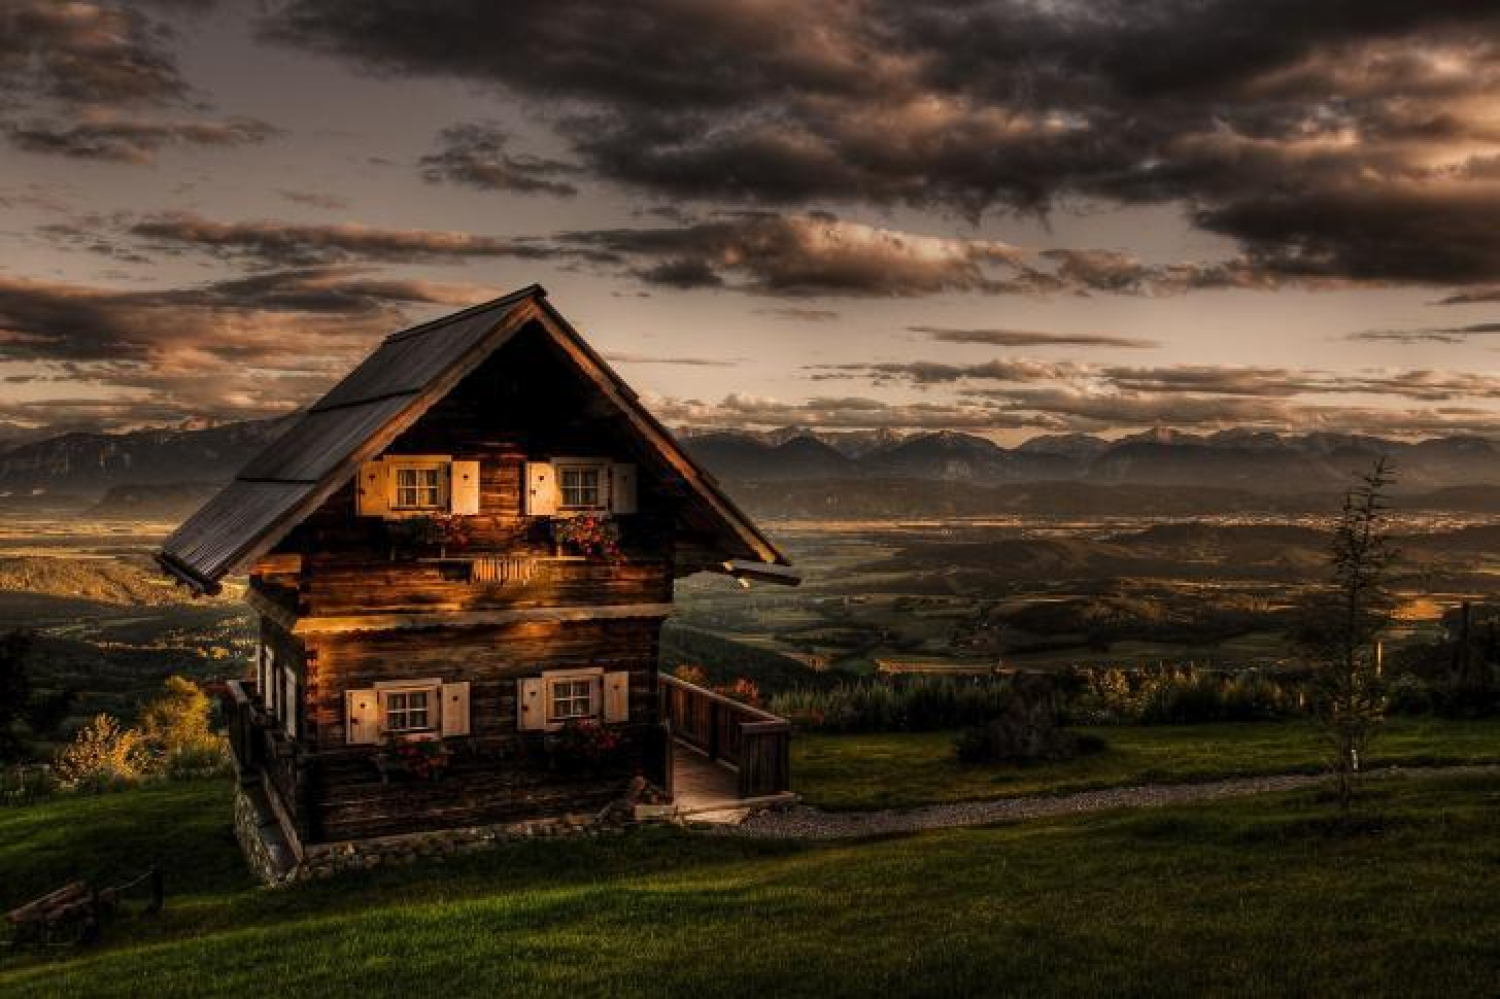 Cozy Cabin On The Plains Romantic Cottage Cottage Wallpaper Scenery Wallpaper